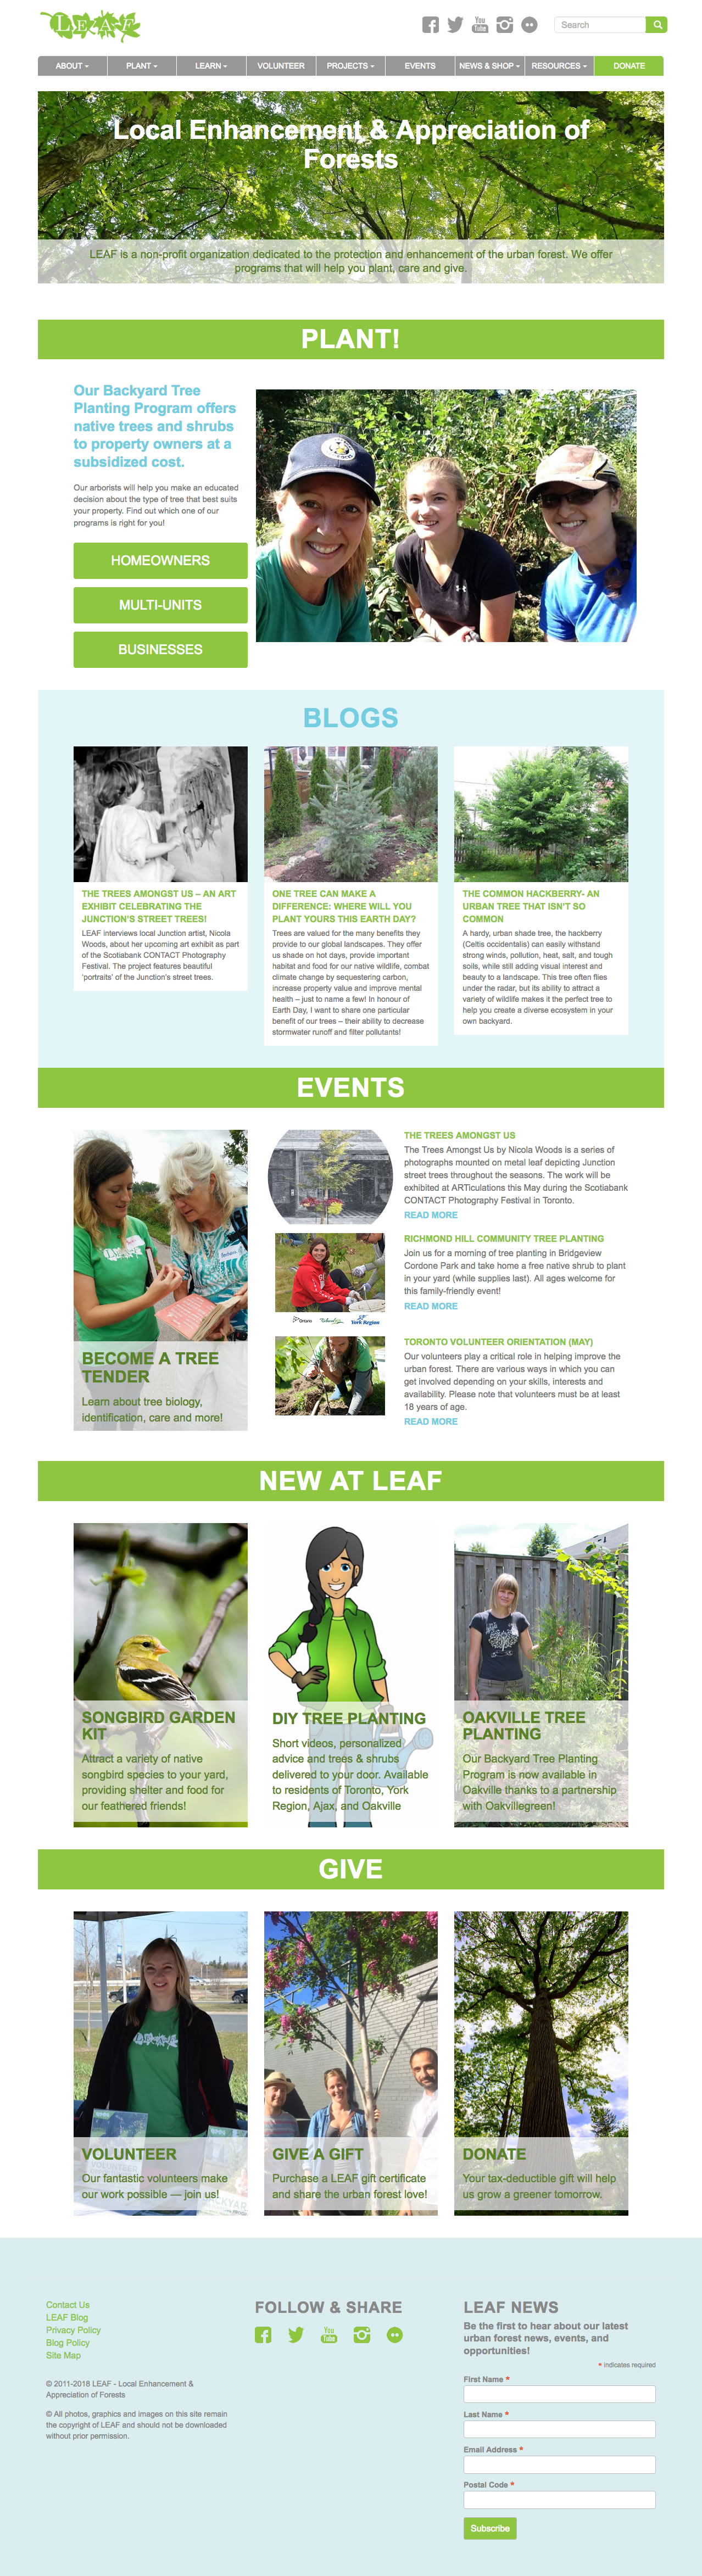 LEAF web site screenshot